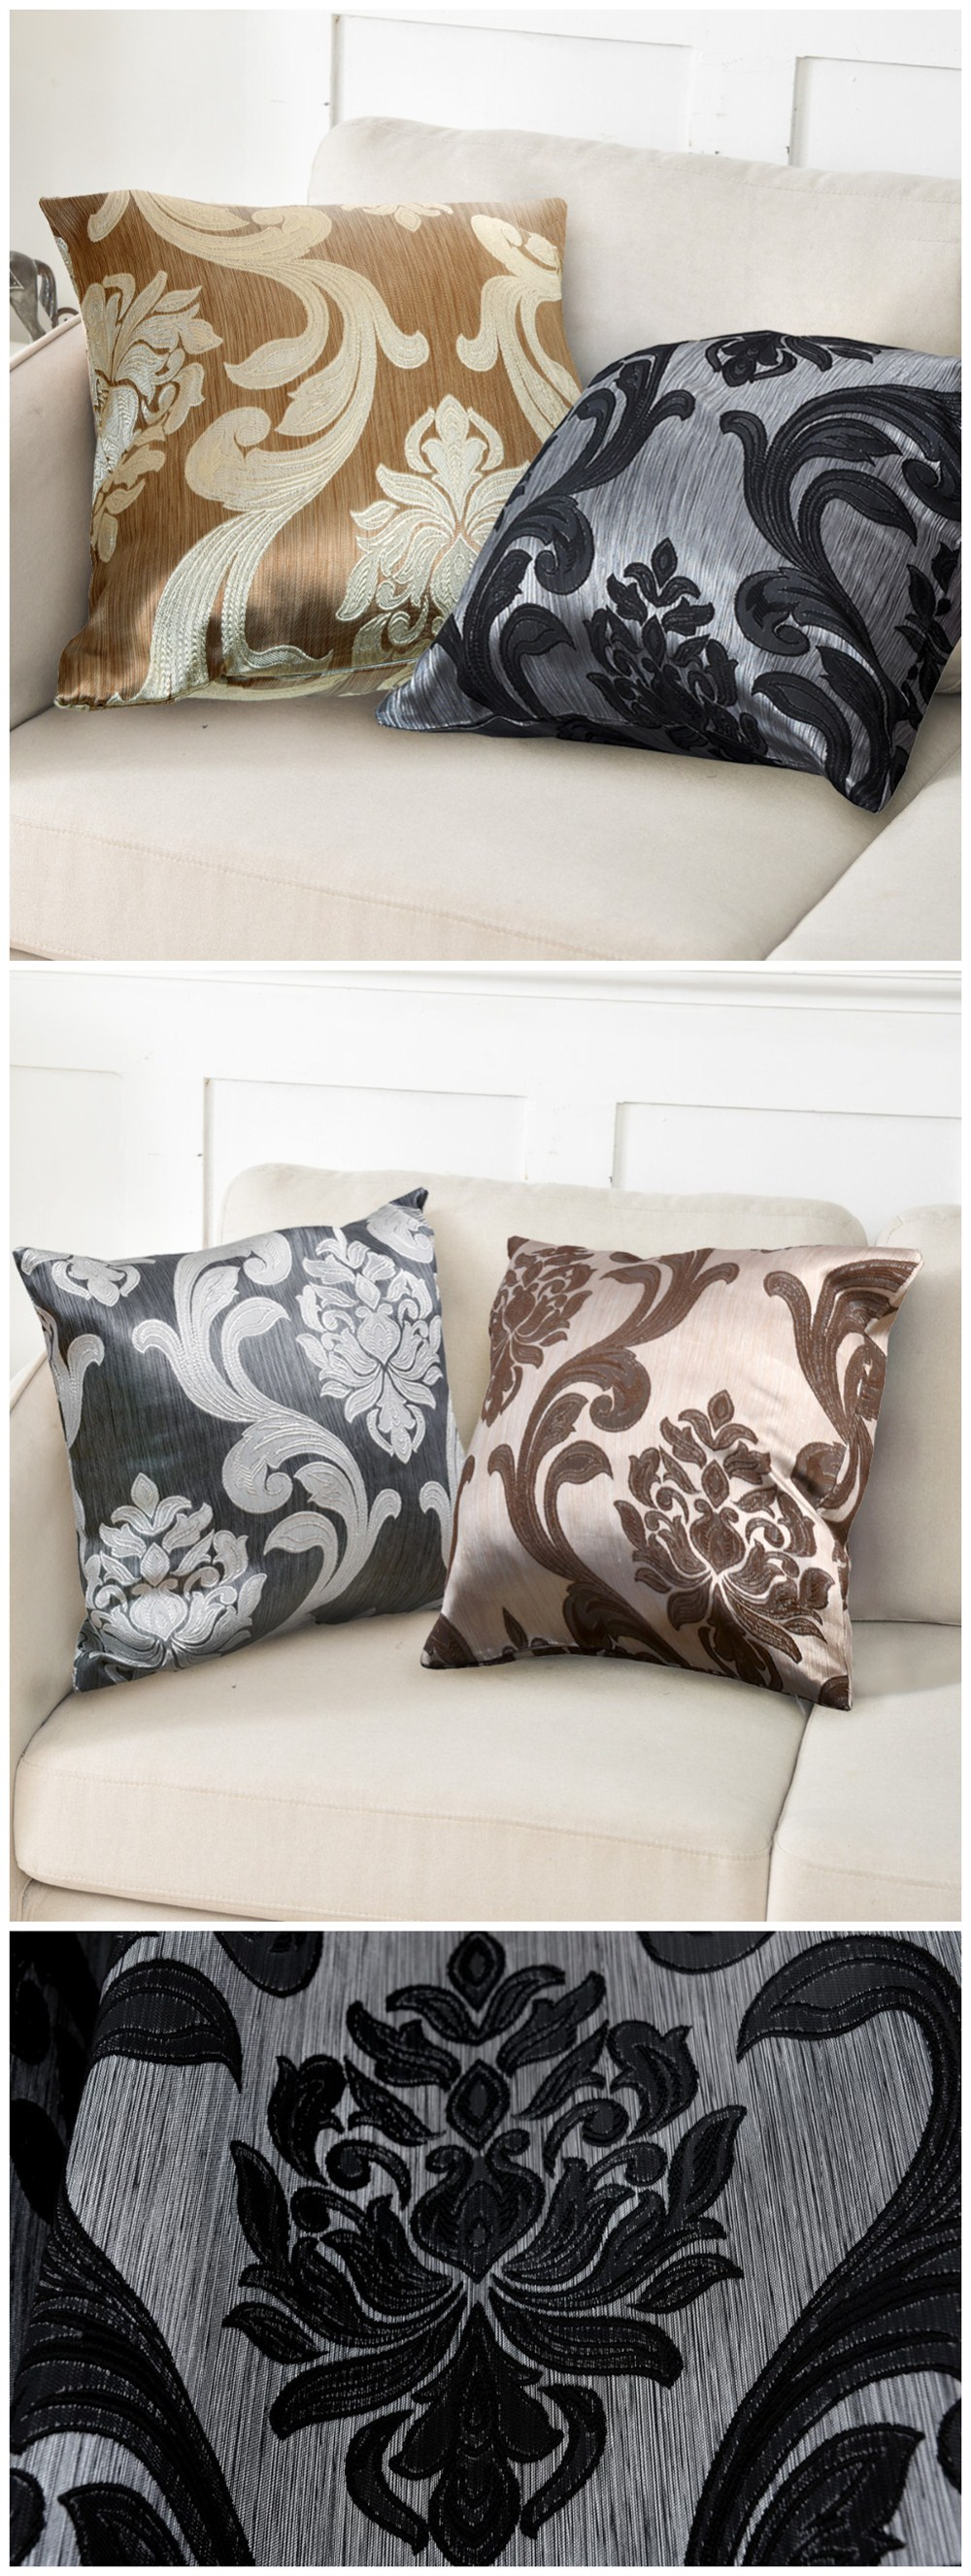 LOZUJOJU Floral Jacquard Hot Sale European Pillow Cases Cushion Covers for Home Decor Textile Rustic Bedroom Chair Living (1)